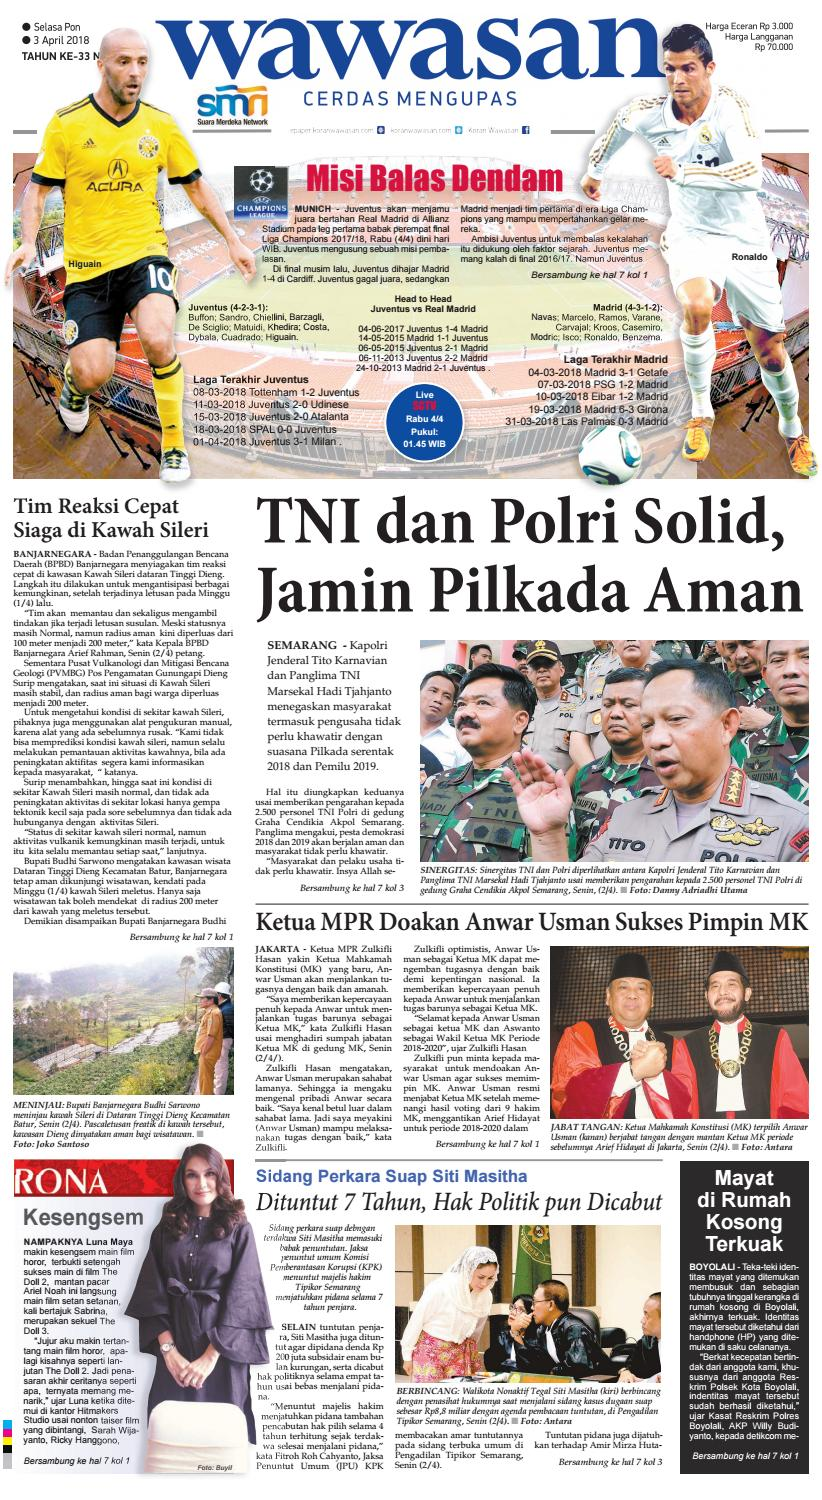 WAWASAN 03 April 2018 by KORAN PAGI WAWASAN - issuu 289d1223aa